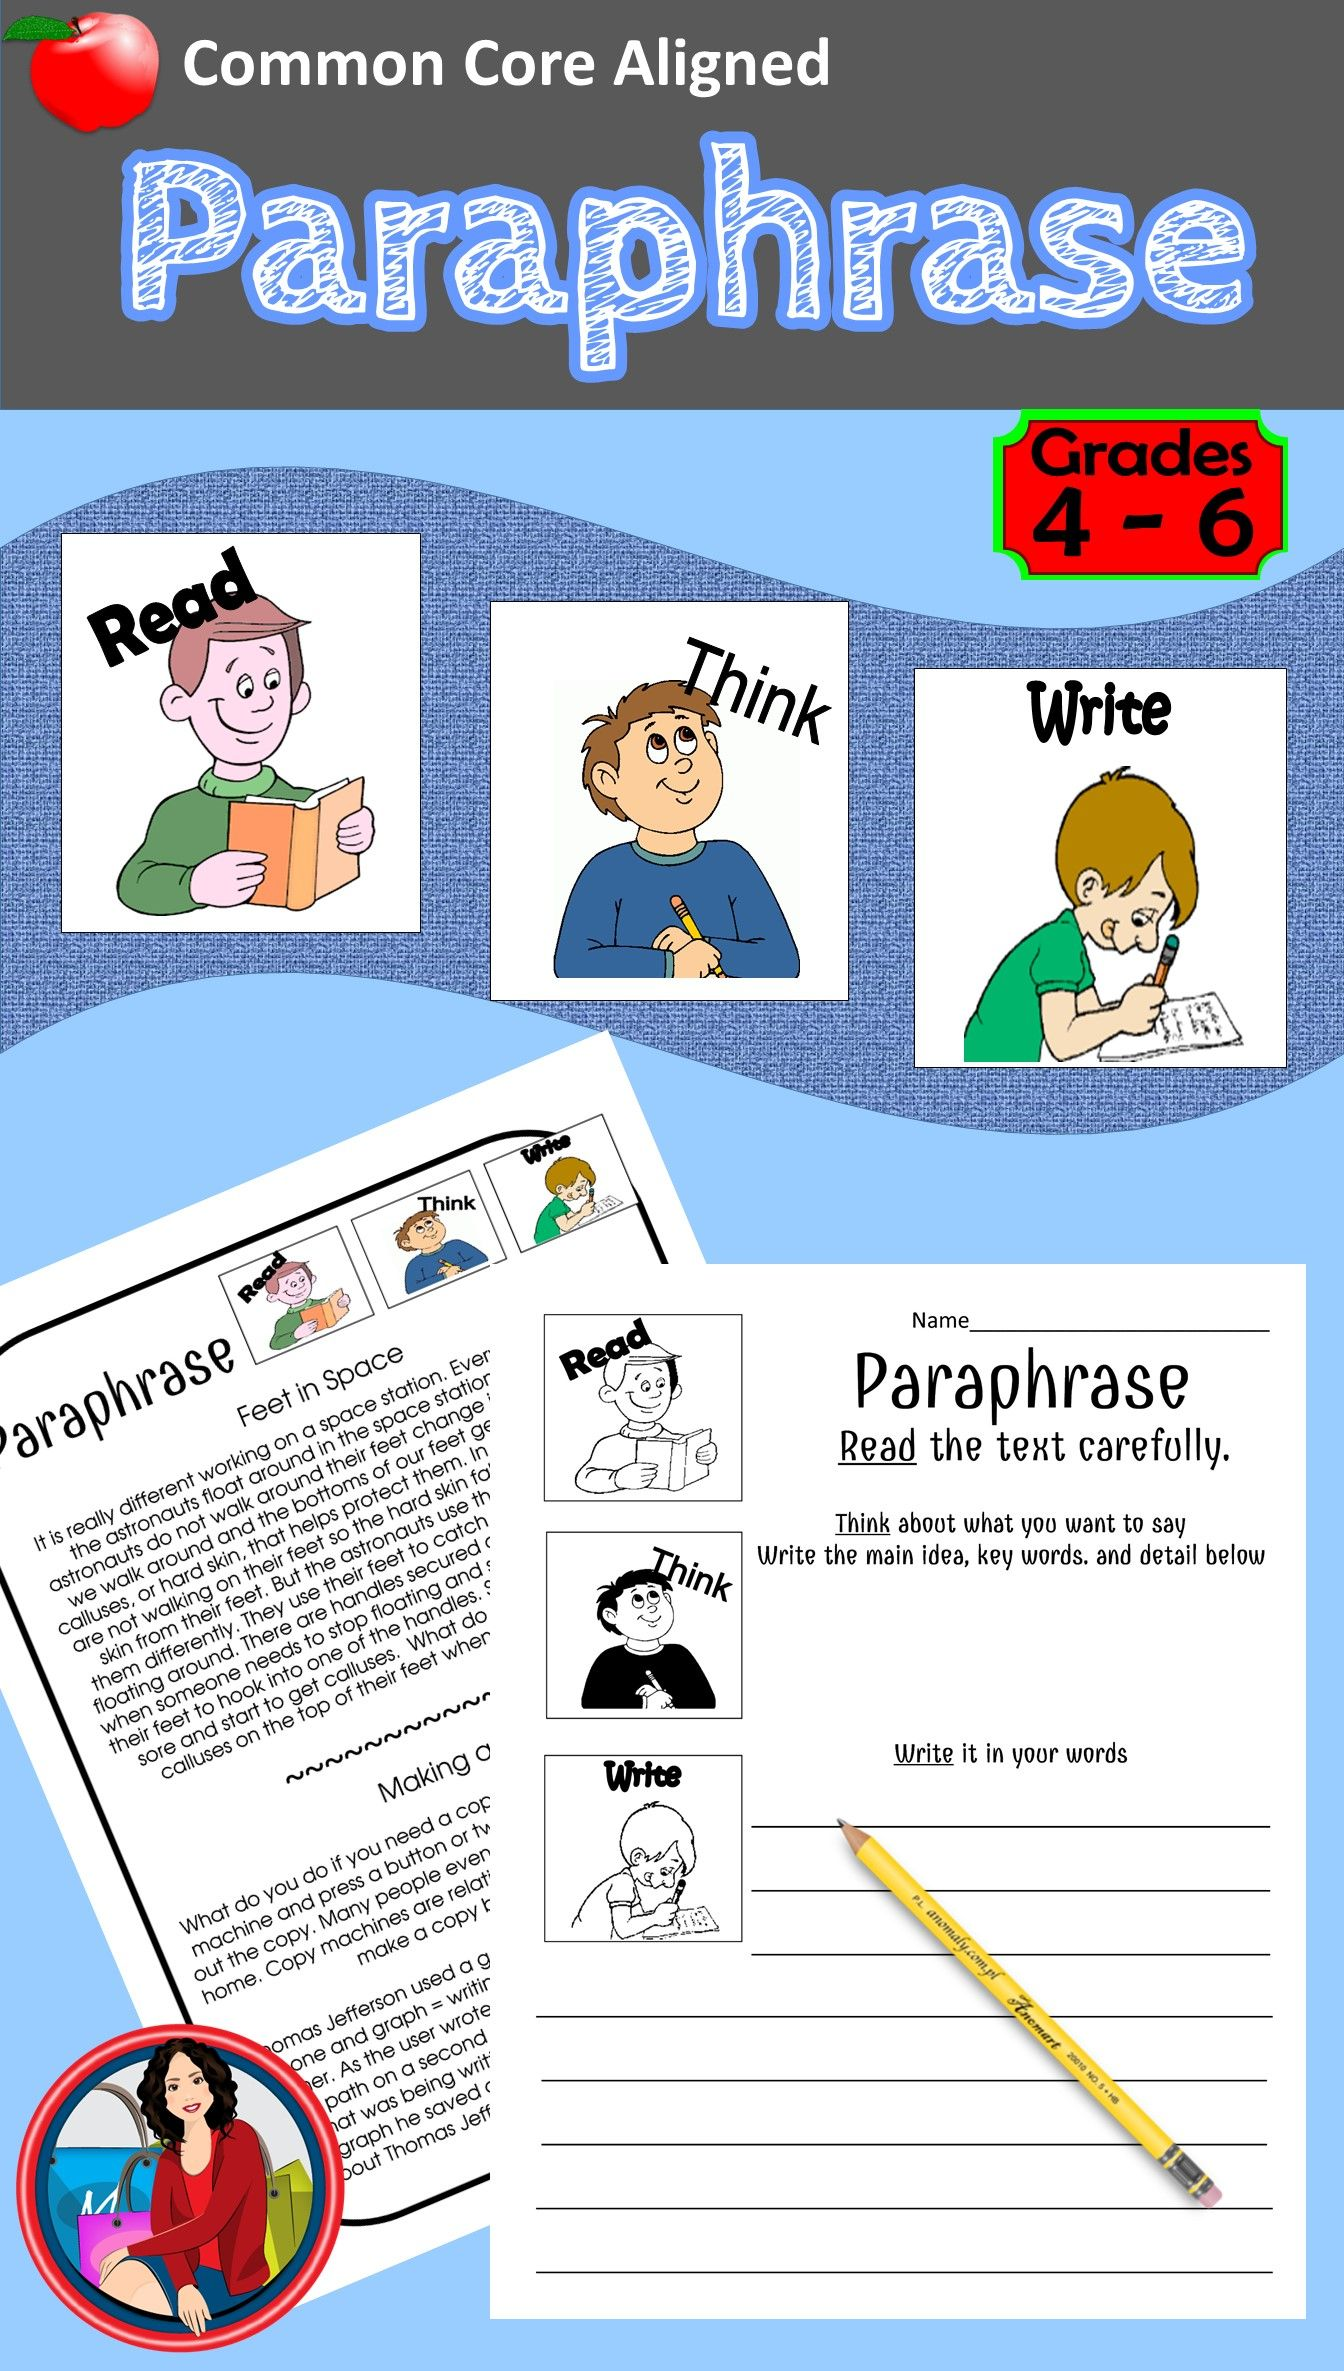 Paraphrase Thi I A Versatile Paraphrasing Activity That Can Be Used Many Way Help Your Student Under Activitie 4th Grade Reading Note Taking And Summarizing